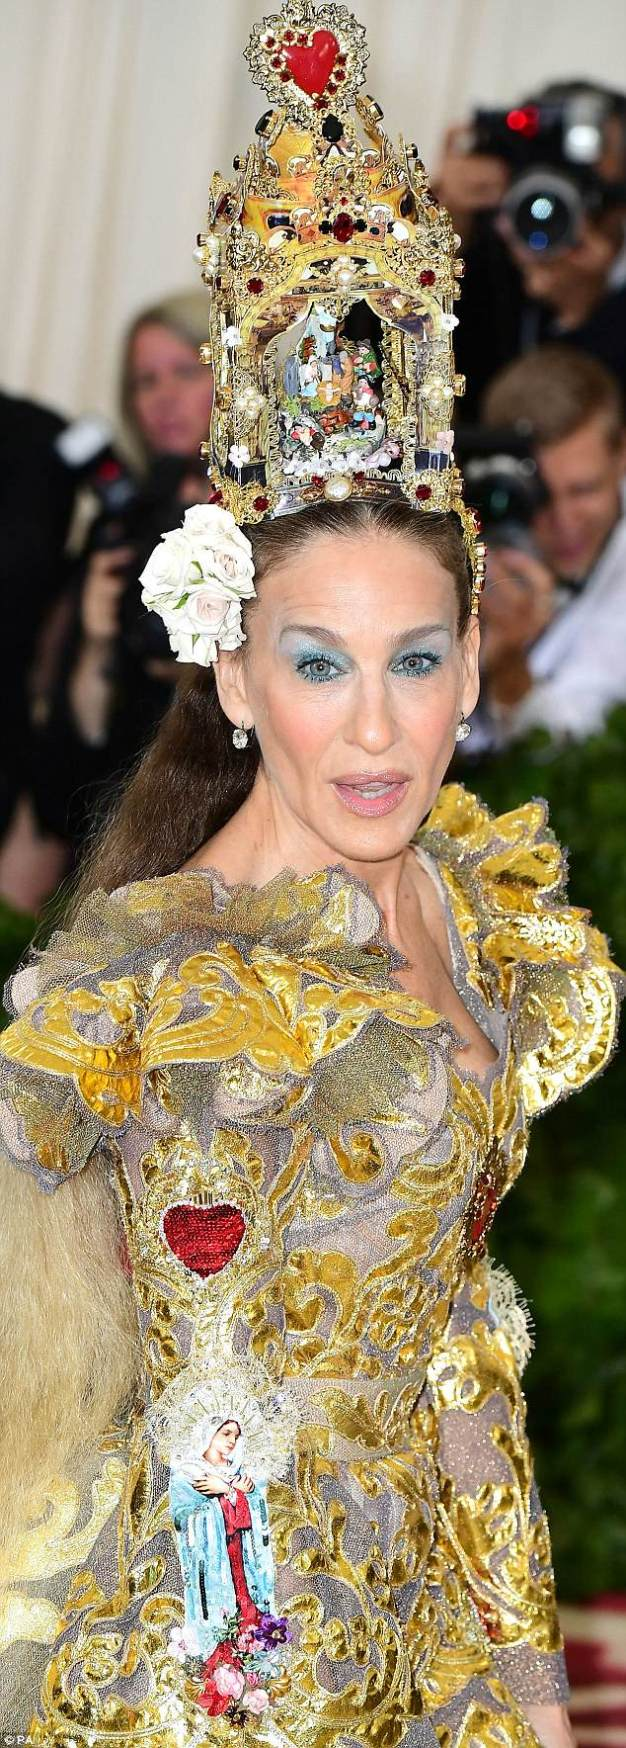 Sickening Bastards: The 2018 Met Gala: Because the Industry Loves Blasphemy 4bf5722f00000578-5703953-the_worst_offender_was_sarah_jessica_parker_who_had_an_entire_na-m-32_1525786015512